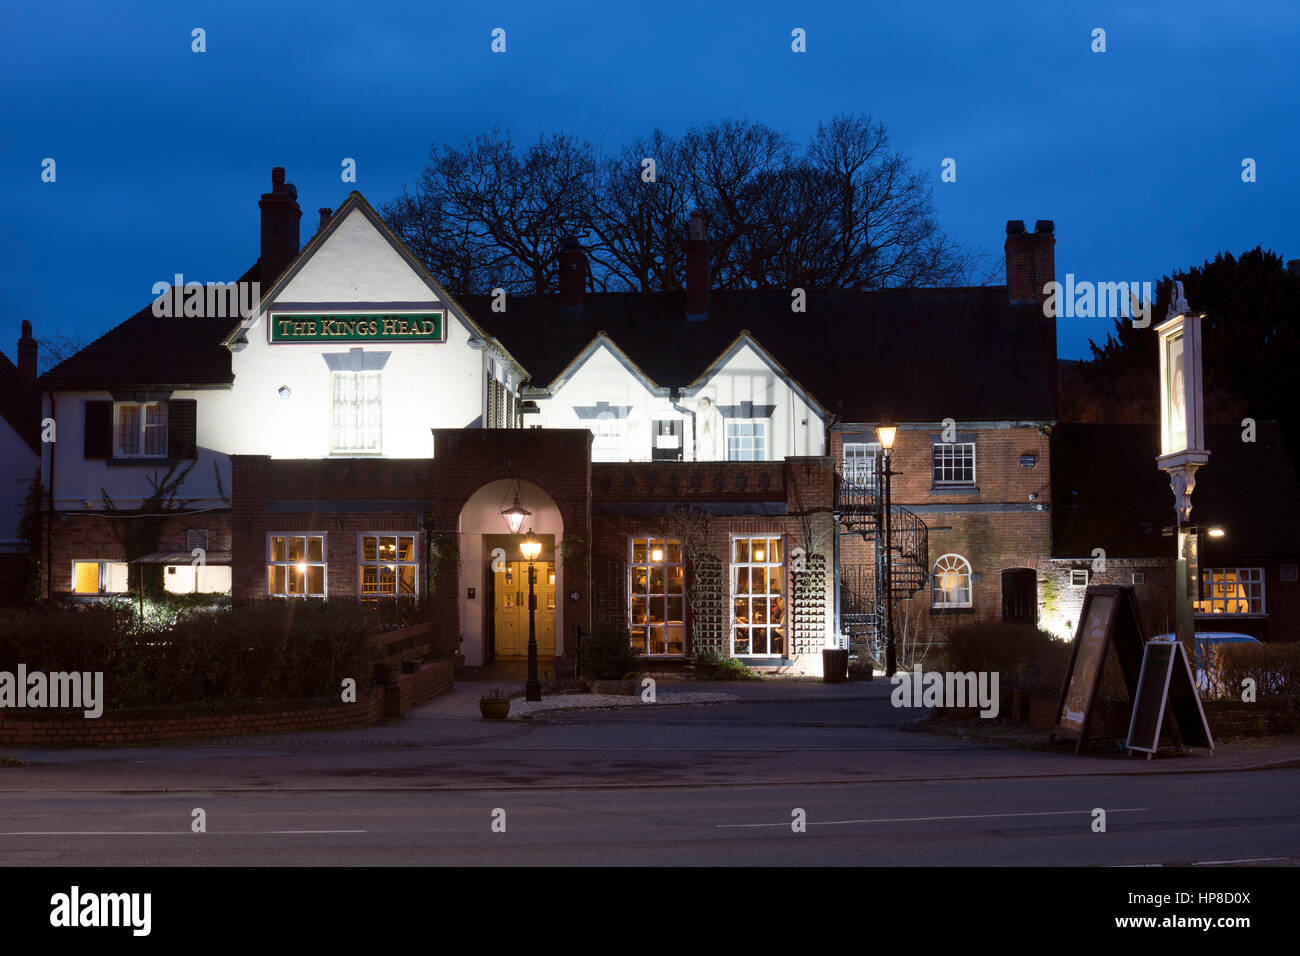 The Kings Head pub at dusk, Wellesbourne, Warwickshire, England, UK - Stock Image